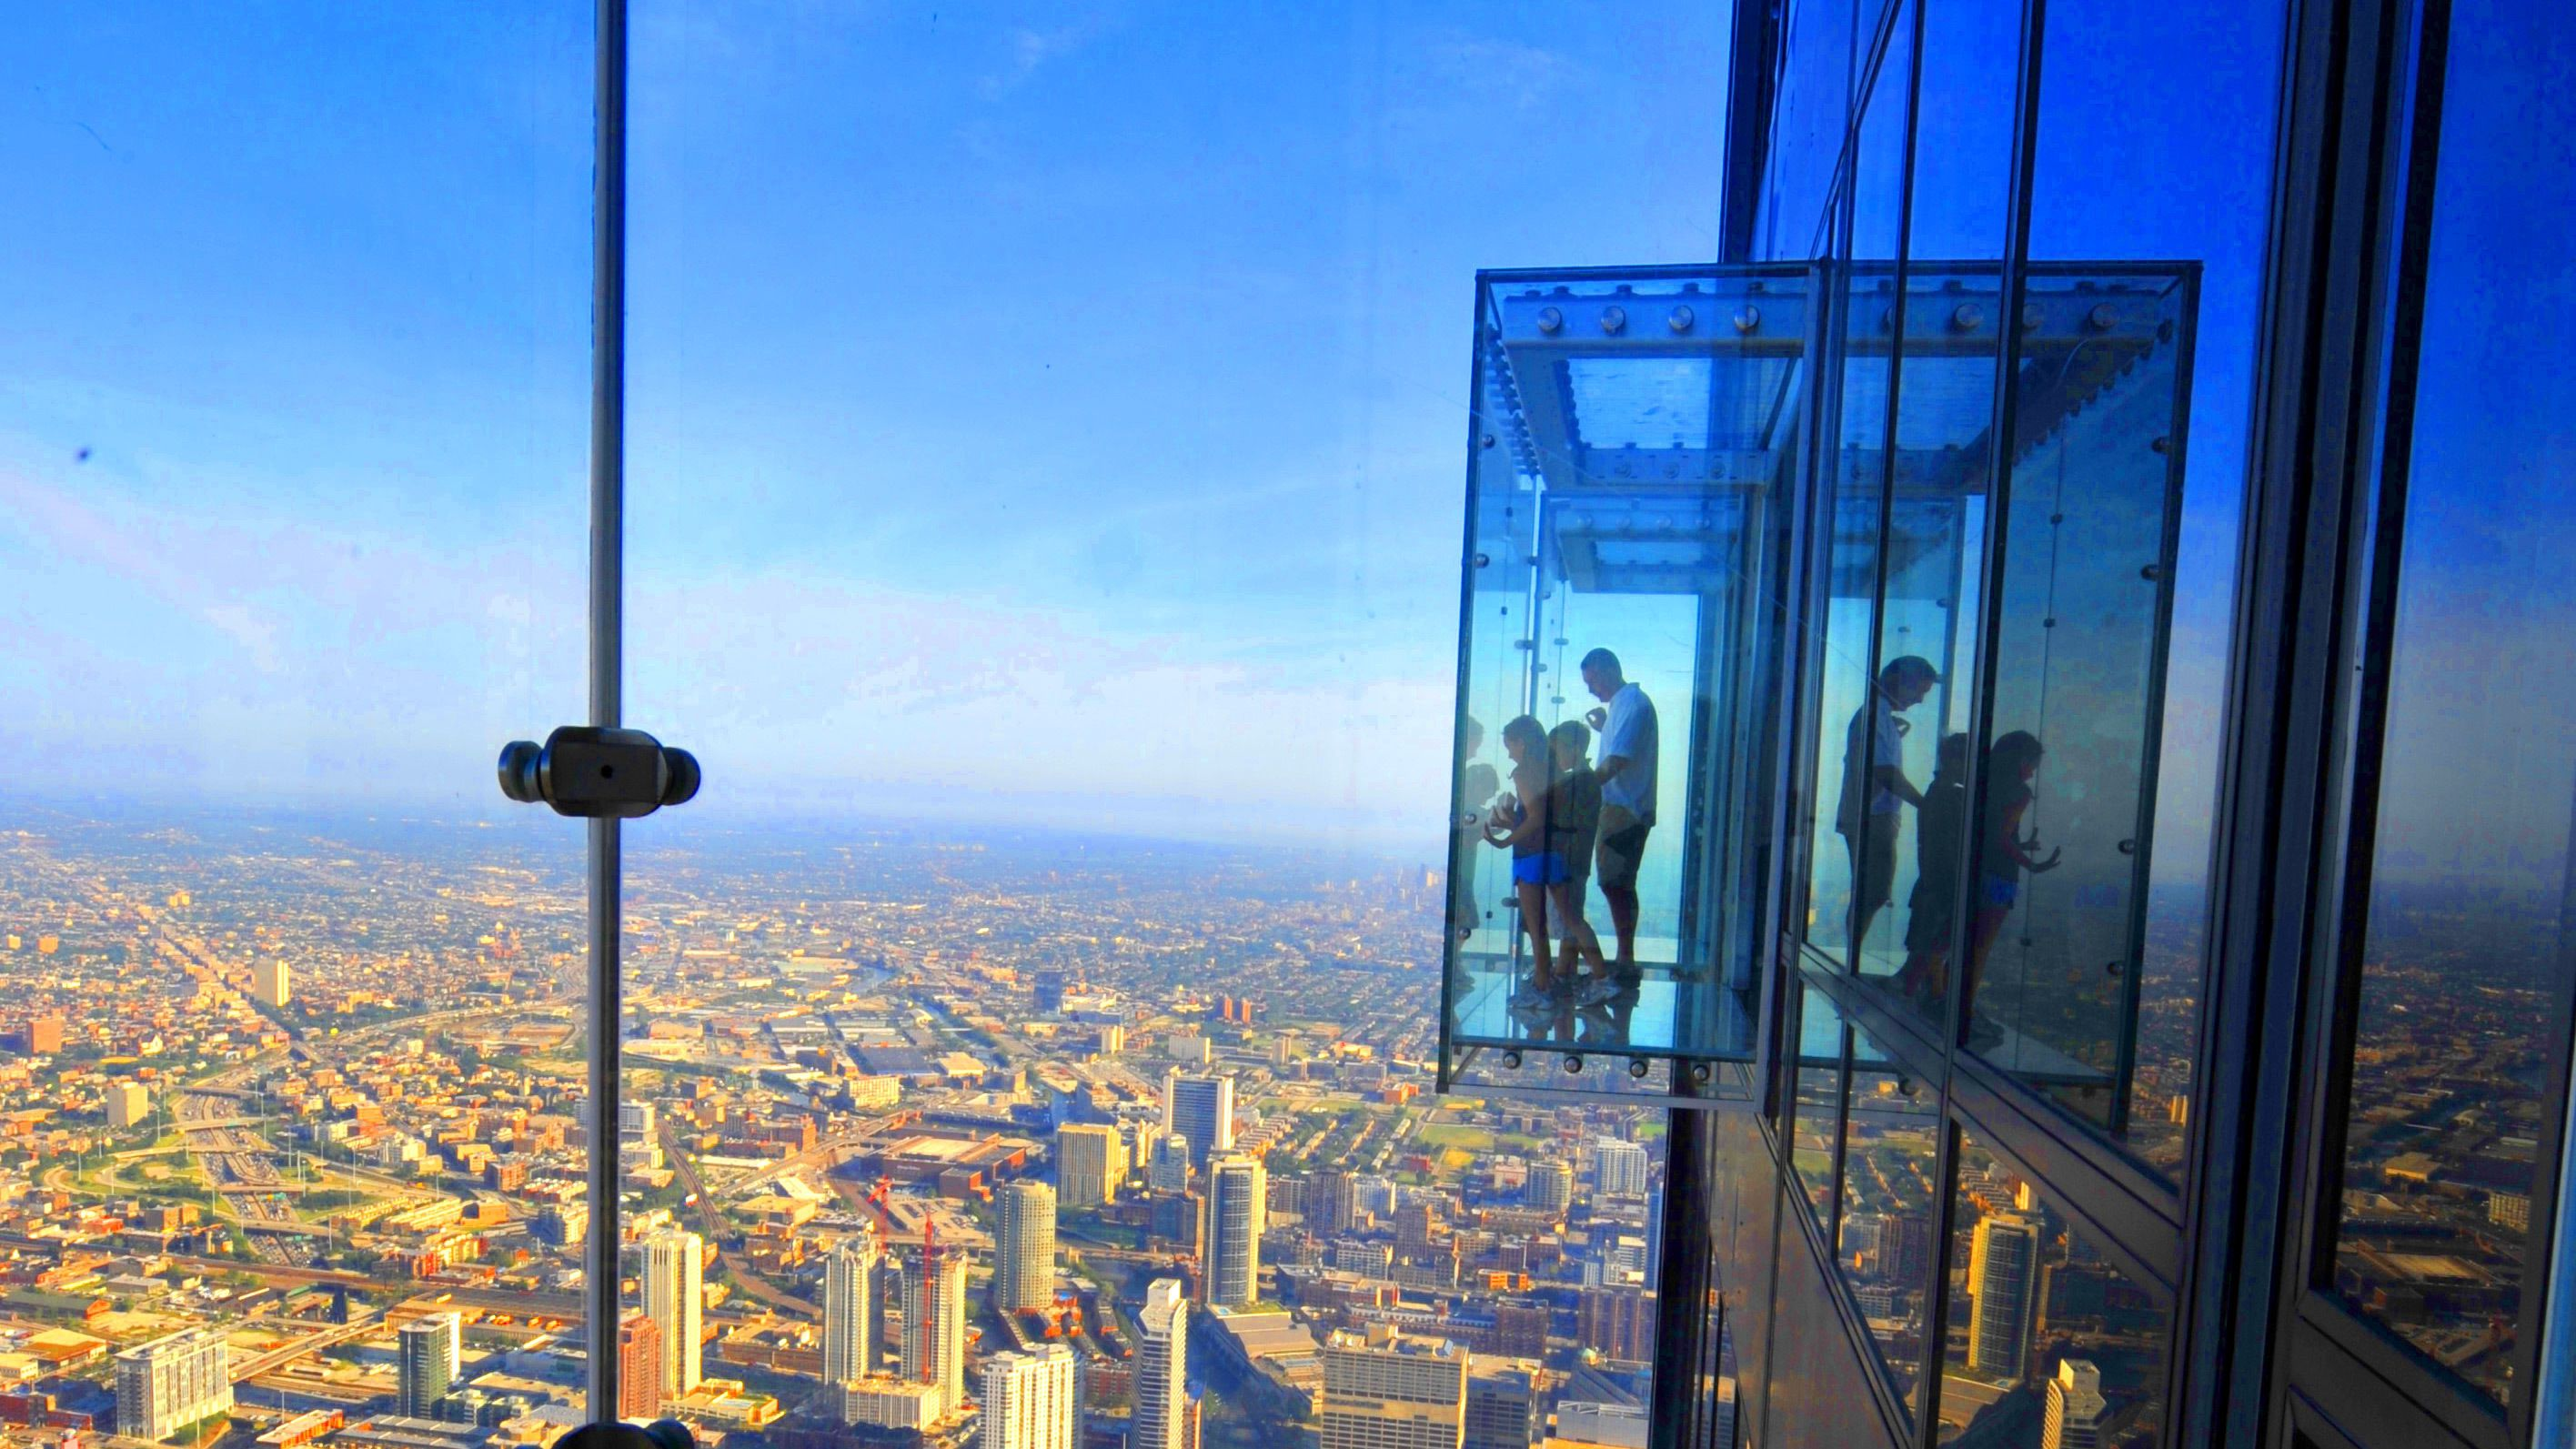 View of Willis Tower observation deck above the city